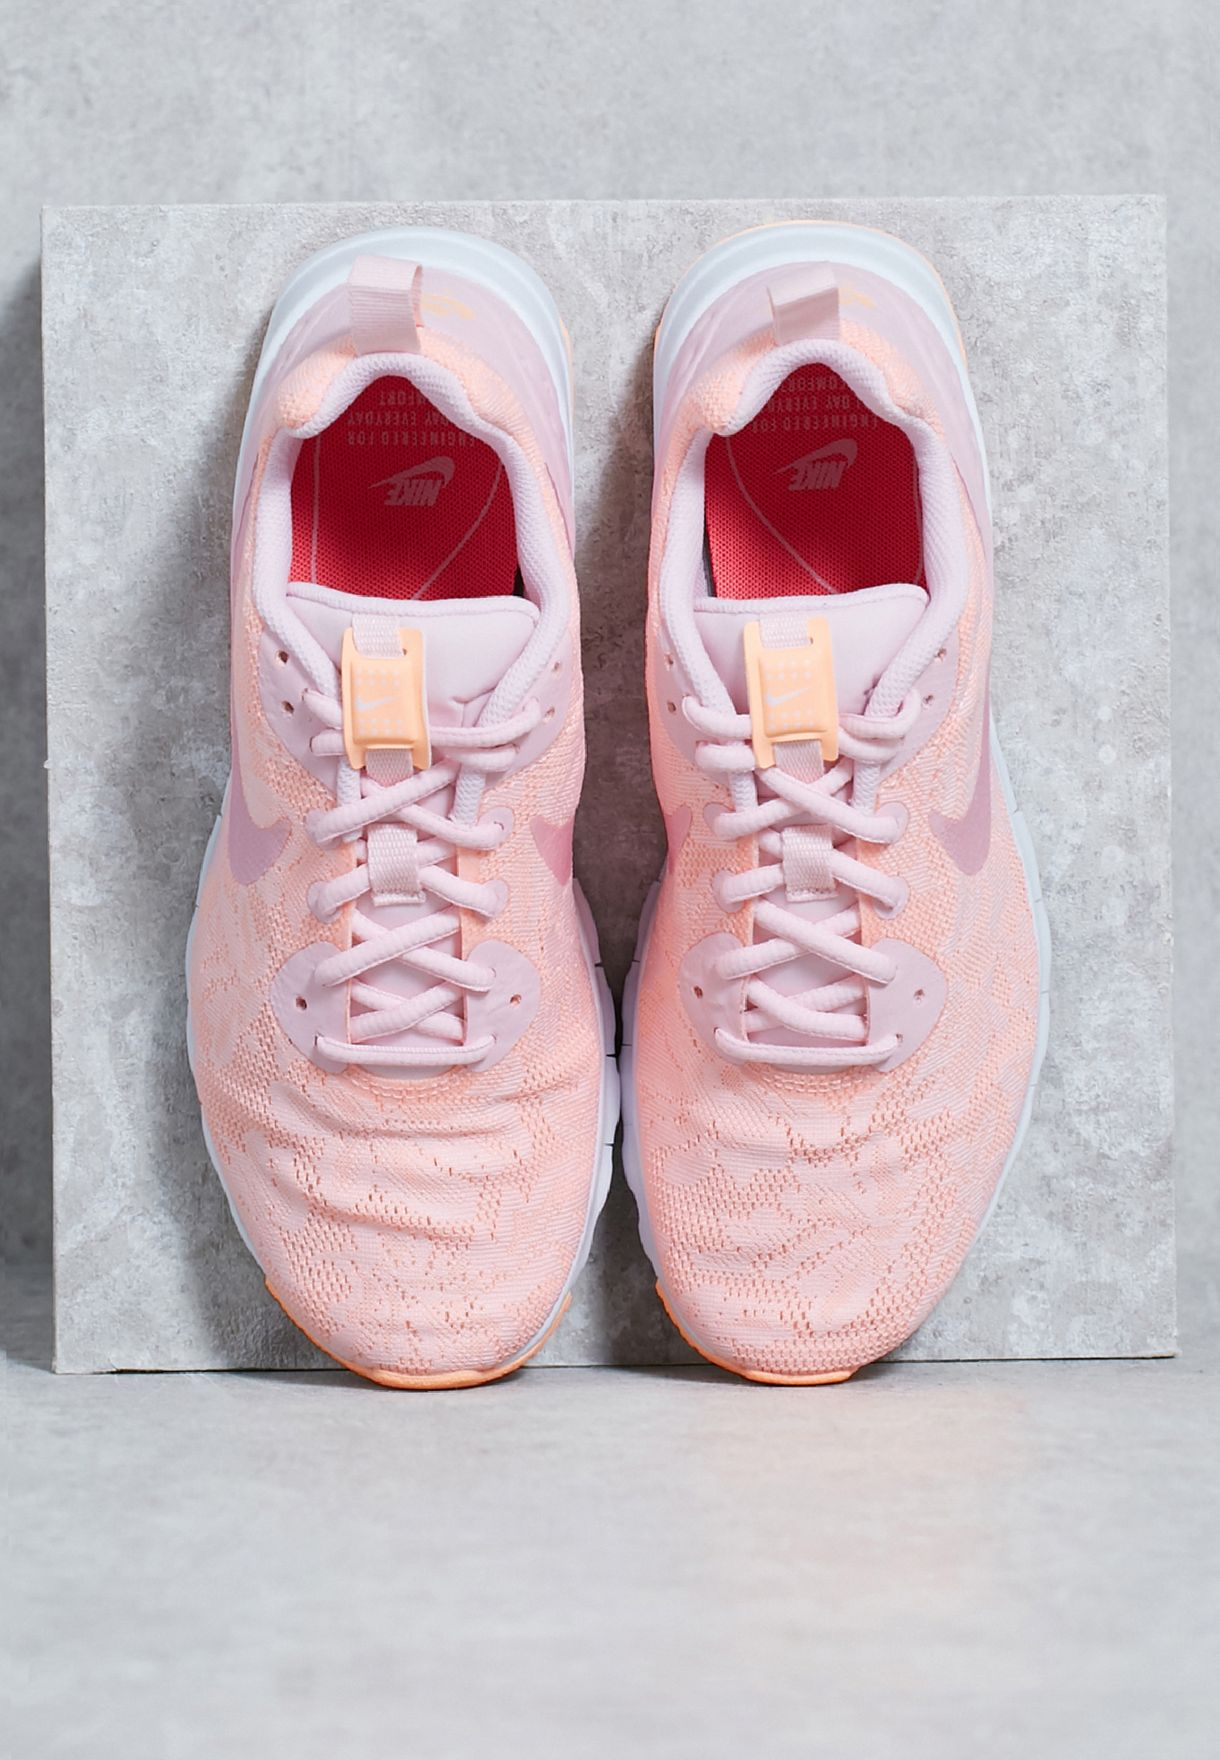 4498444c9d Shop Nike pink Air Max Motion Low ENG 902853-600 for Women in UAE ...